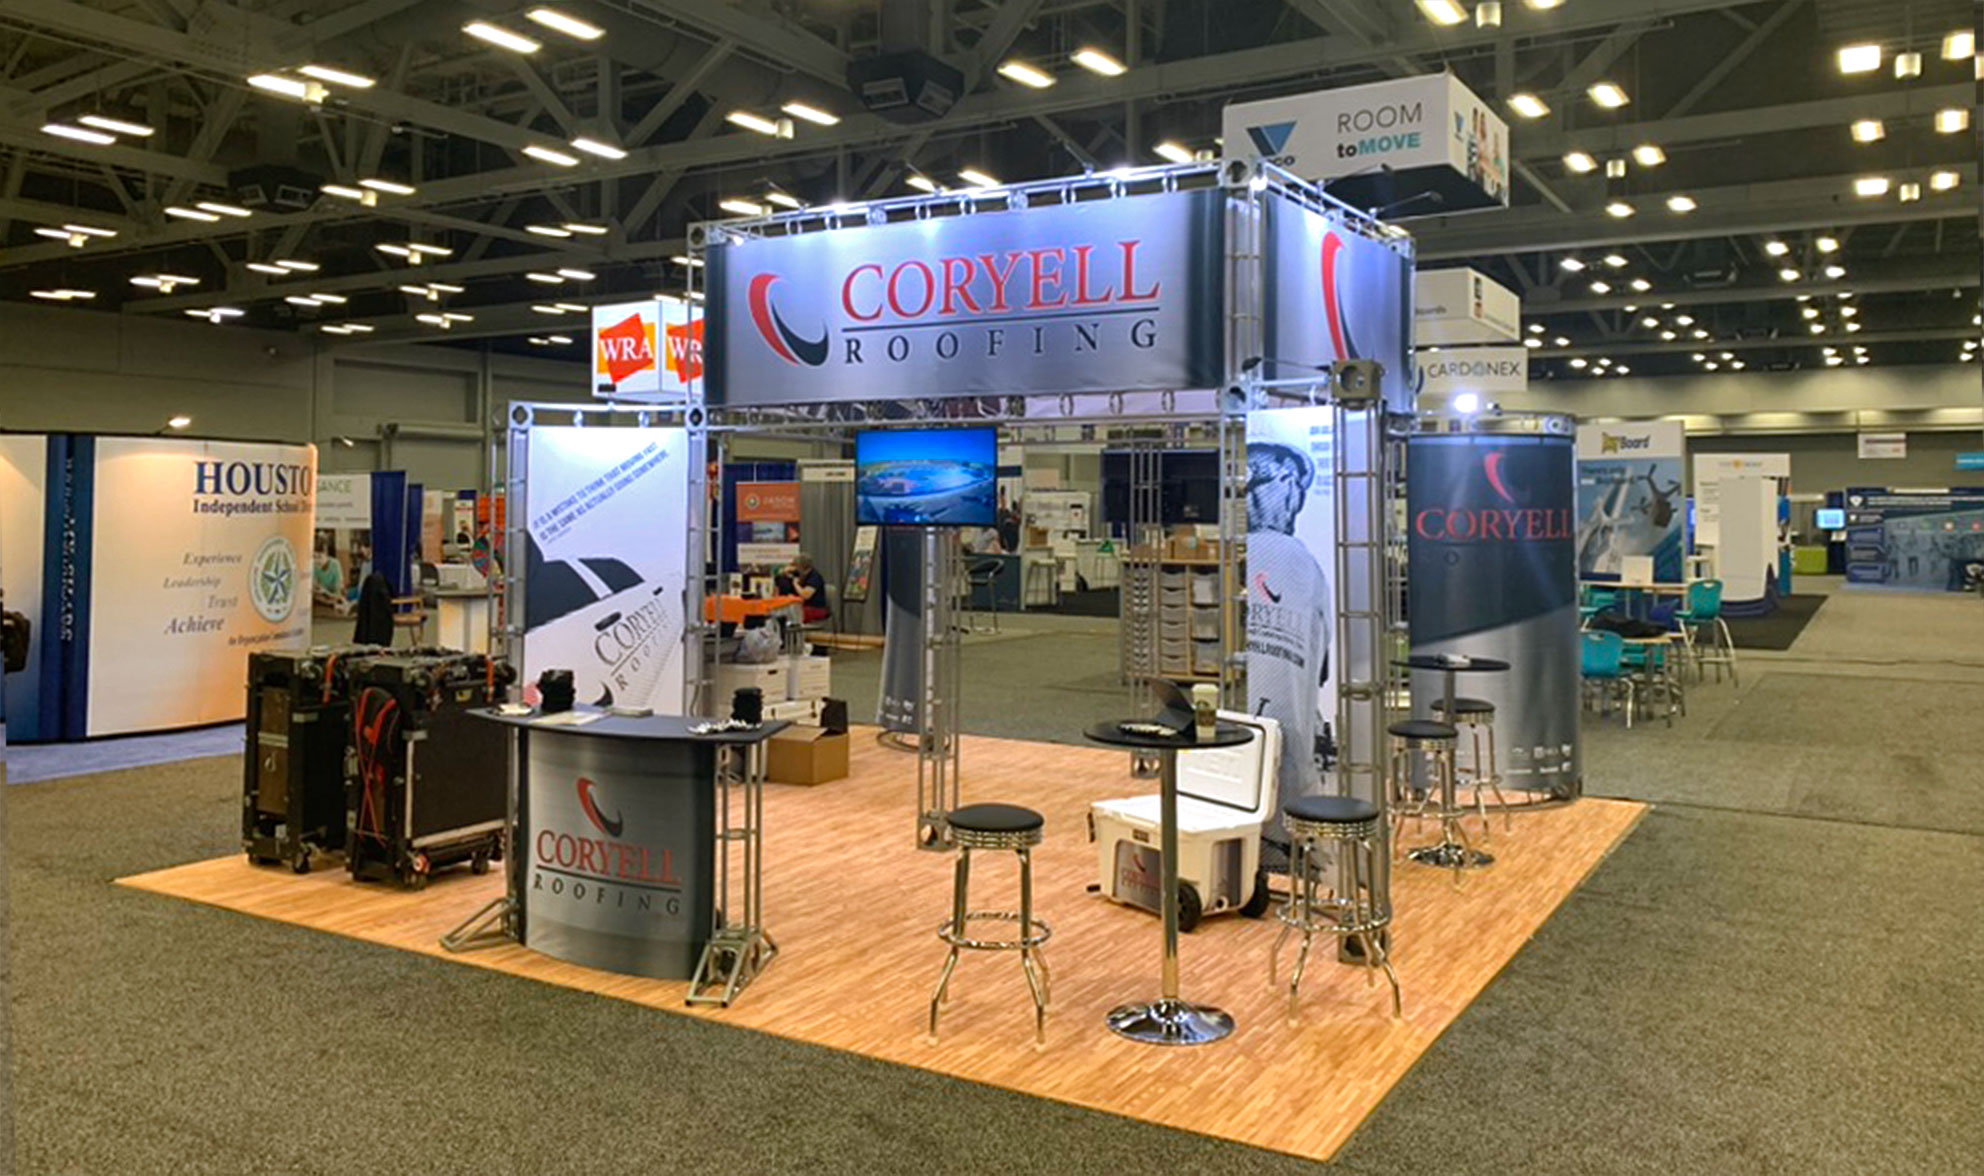 Coryell Flagship Exhibition Booth At The Texas Association Of School Administrators Midwinter Conference